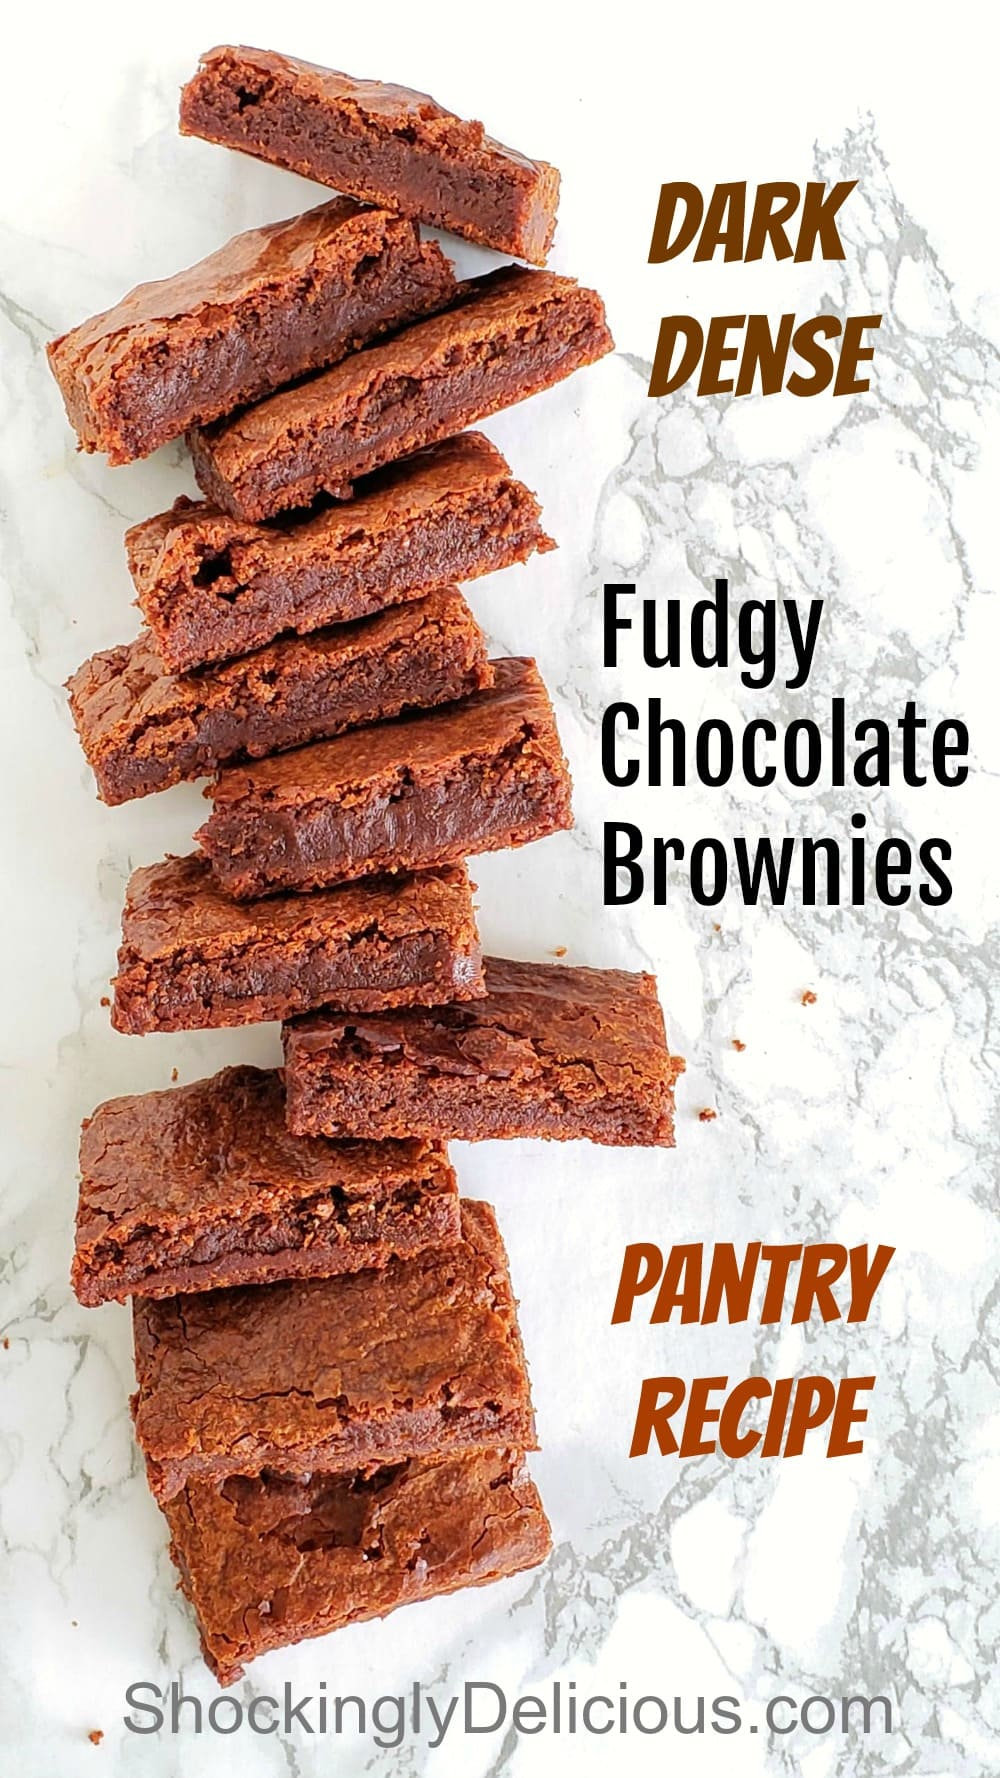 Fudgy Chocolate Brownies stacked on a marble counter top